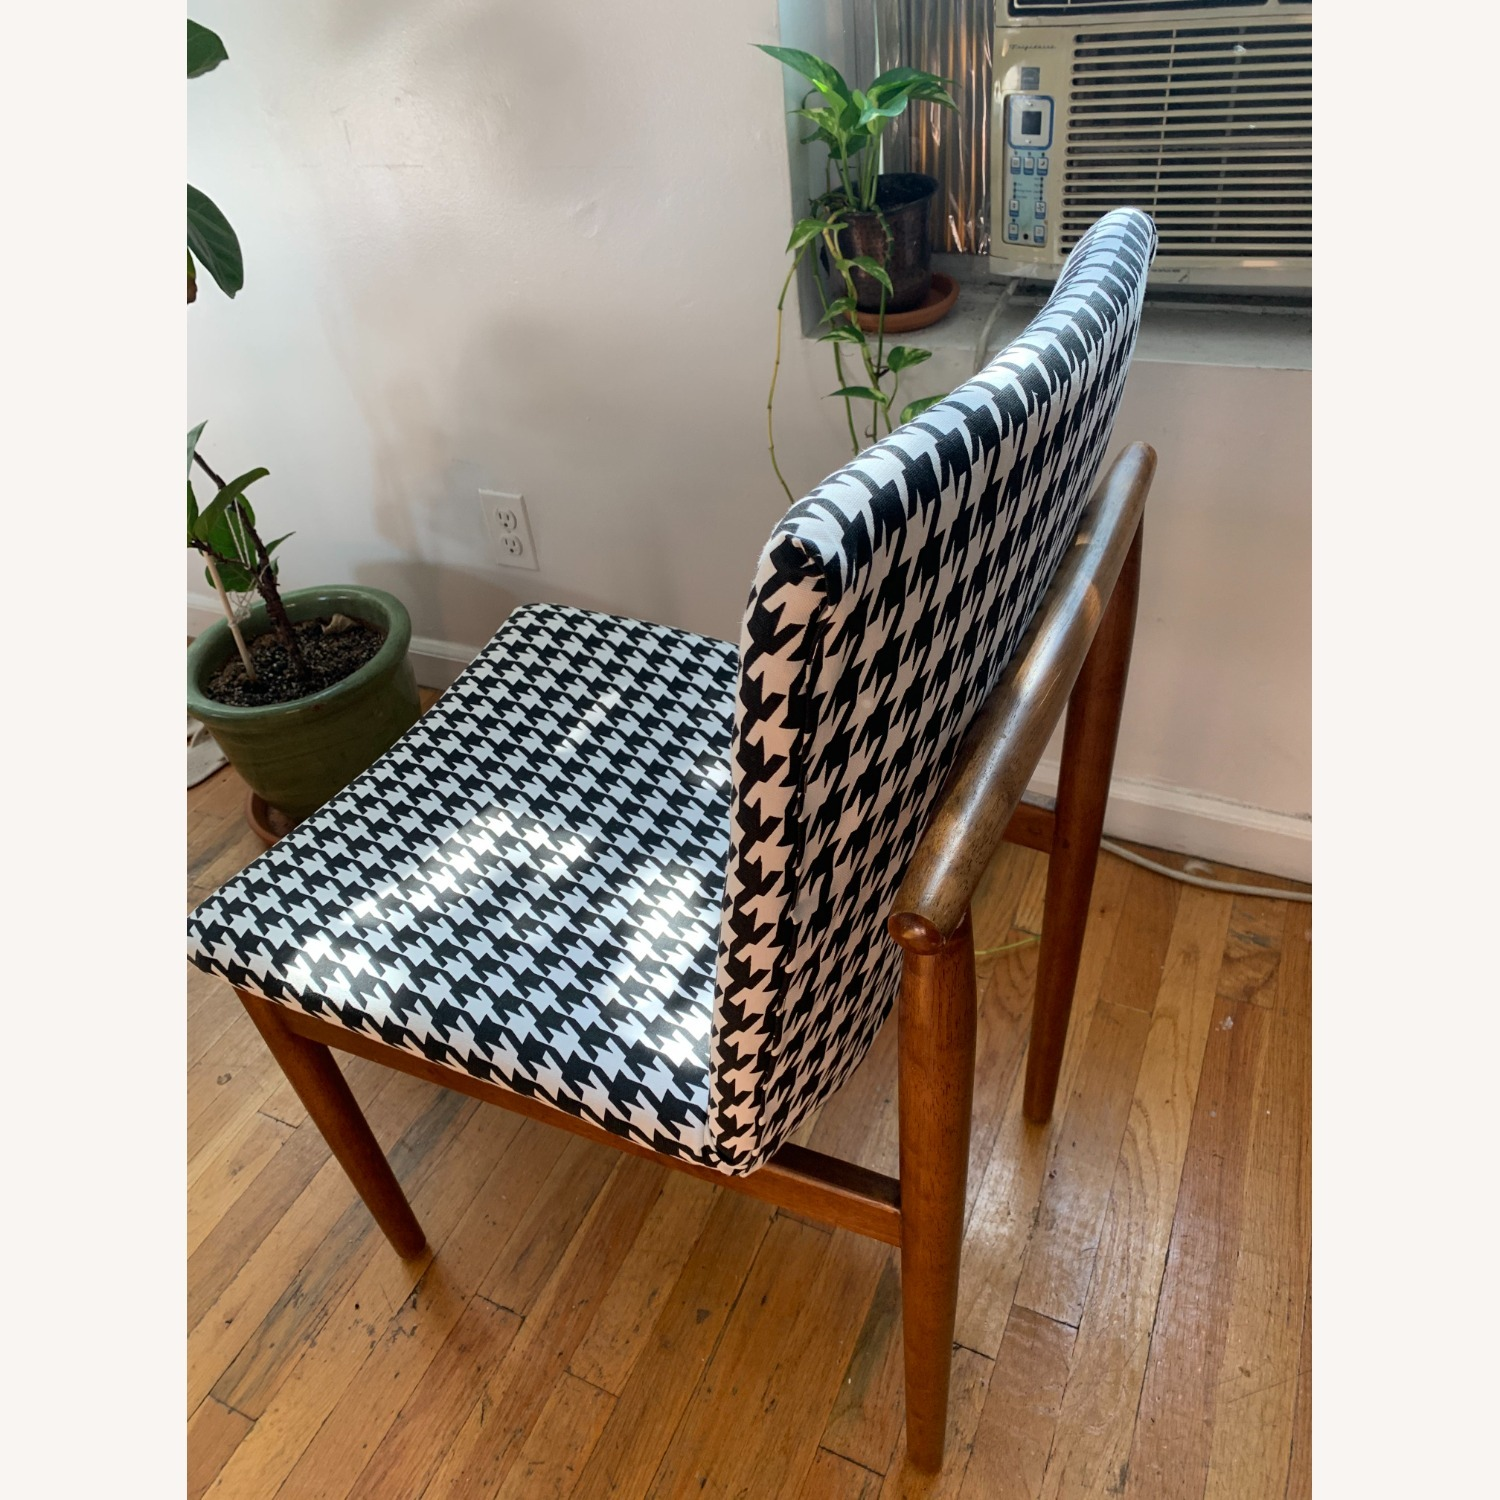 West Elm Houndstooth Customized Accent Chair - image-2